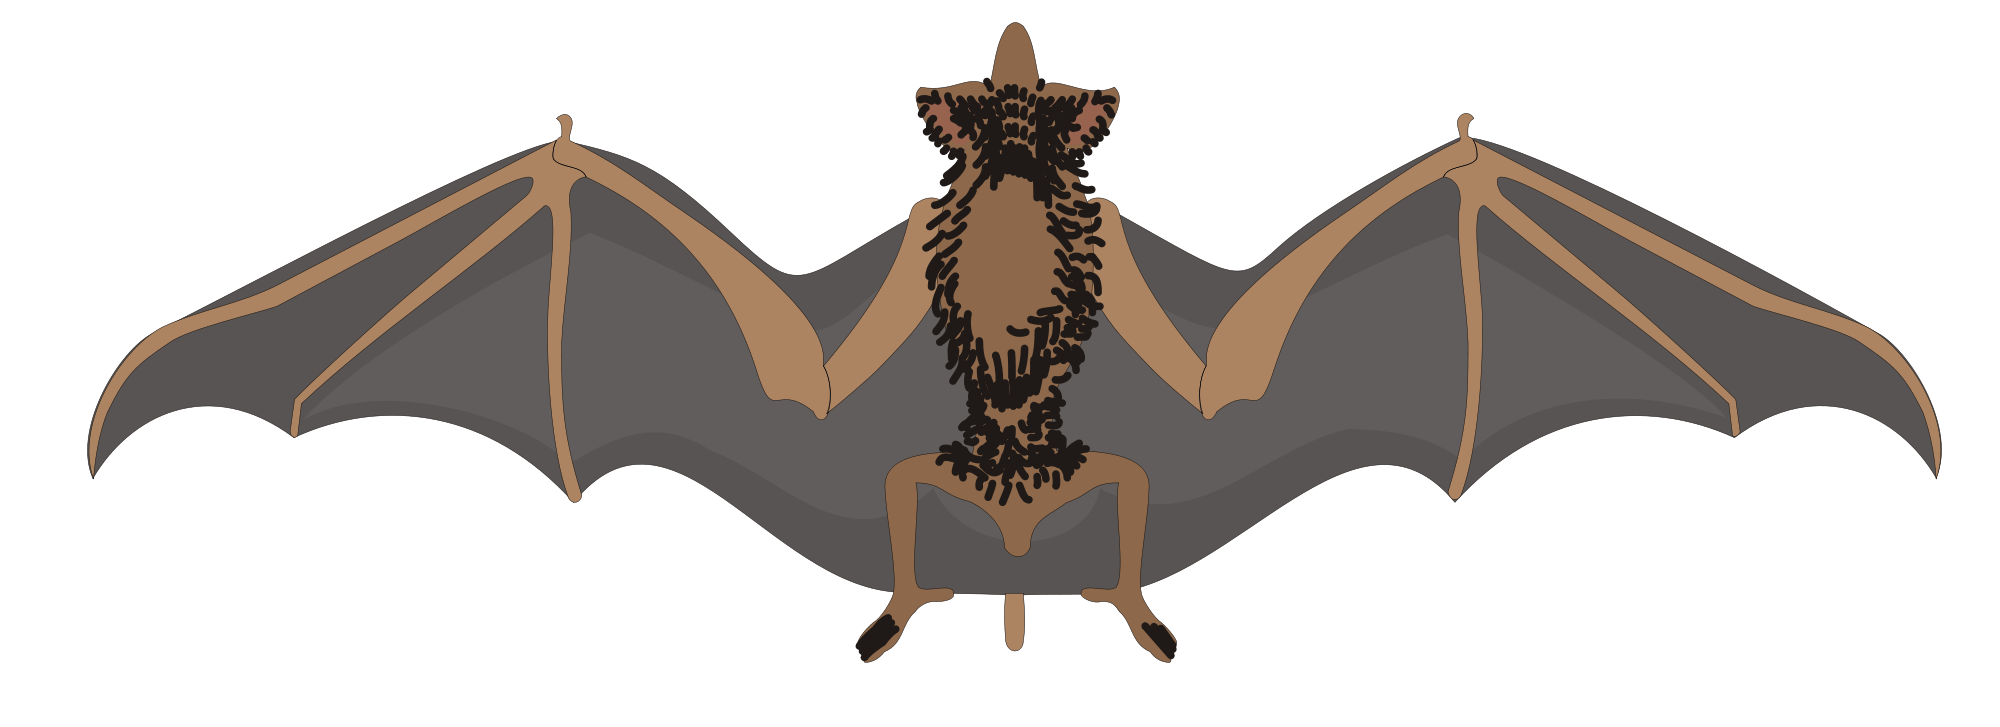 Clipart birds bat. Learn about nature free